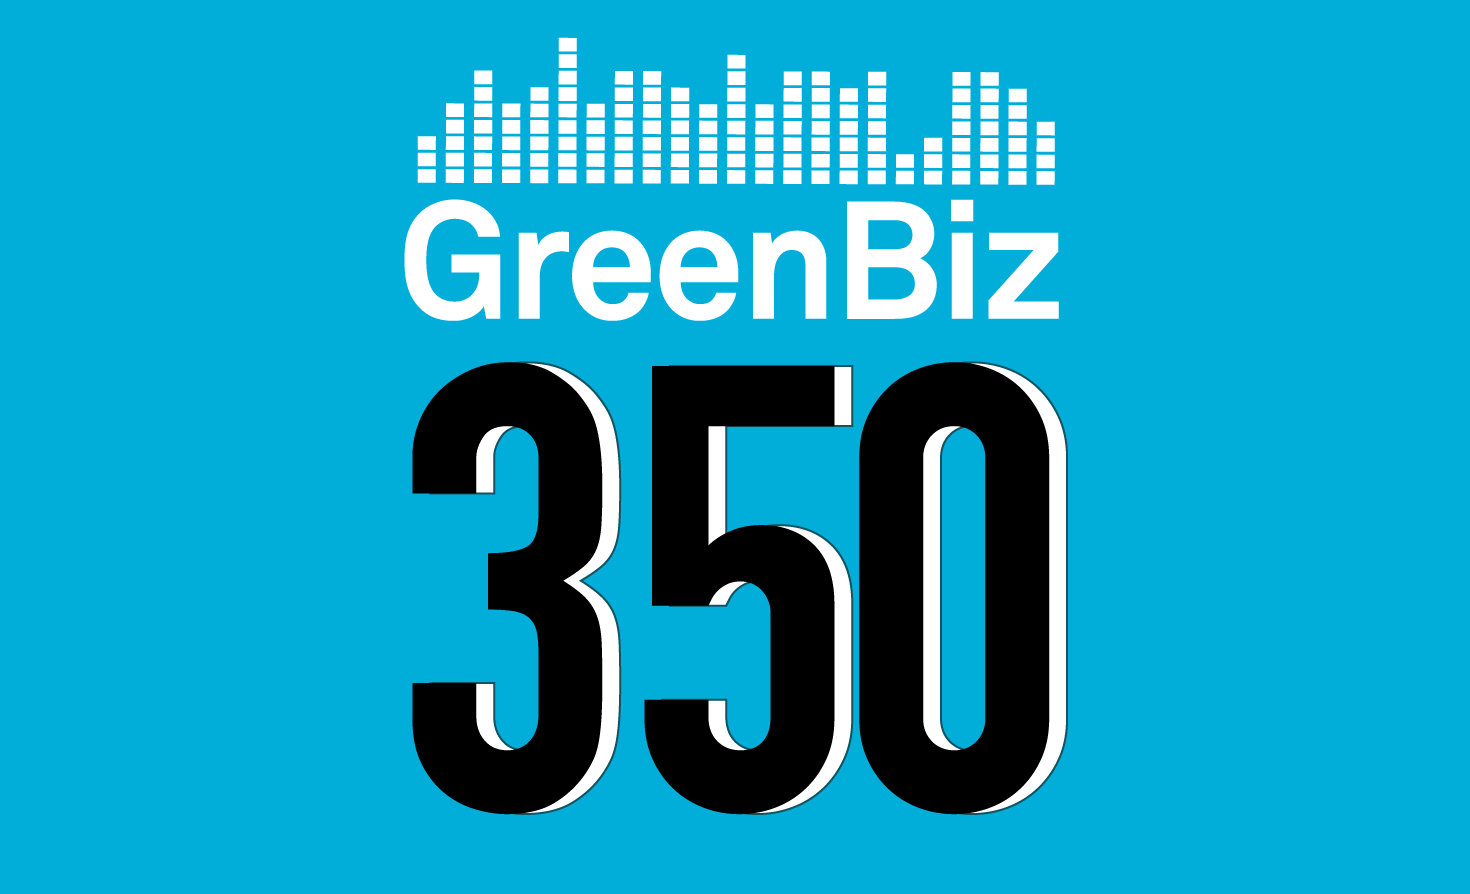 Episode 173: Amplifying local impact, cleantech matchmaking, a 30 Under 30 alumna reflects